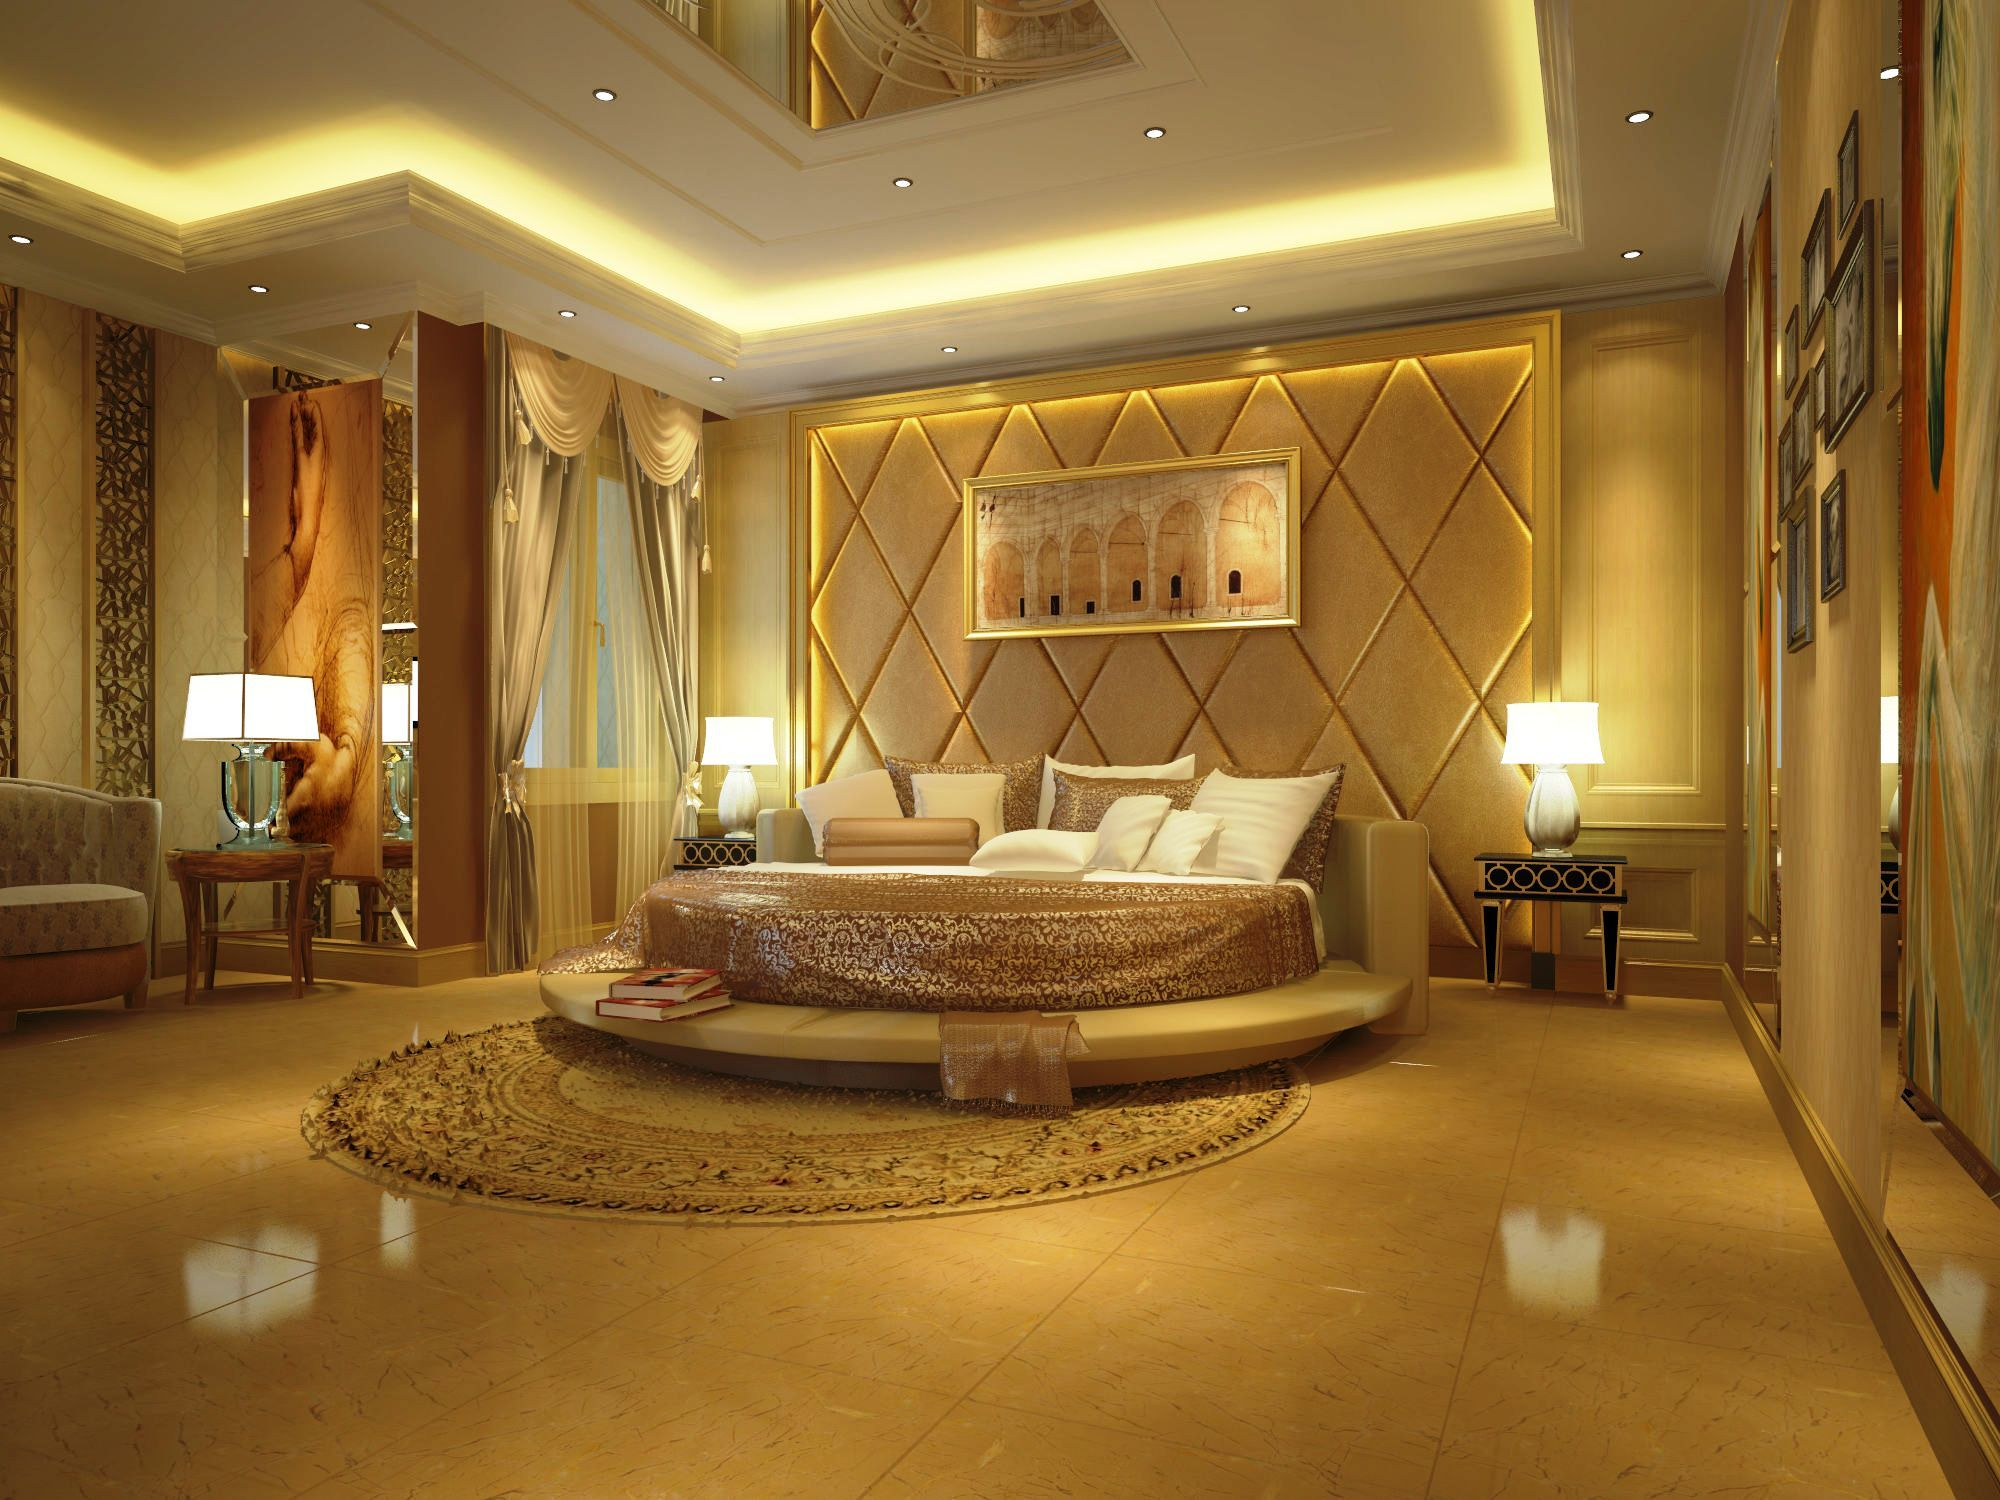 Luxury Bedrooms Interior Design Interesting A Master Bedroom Fit For A King & Queendescription From Design Ideas